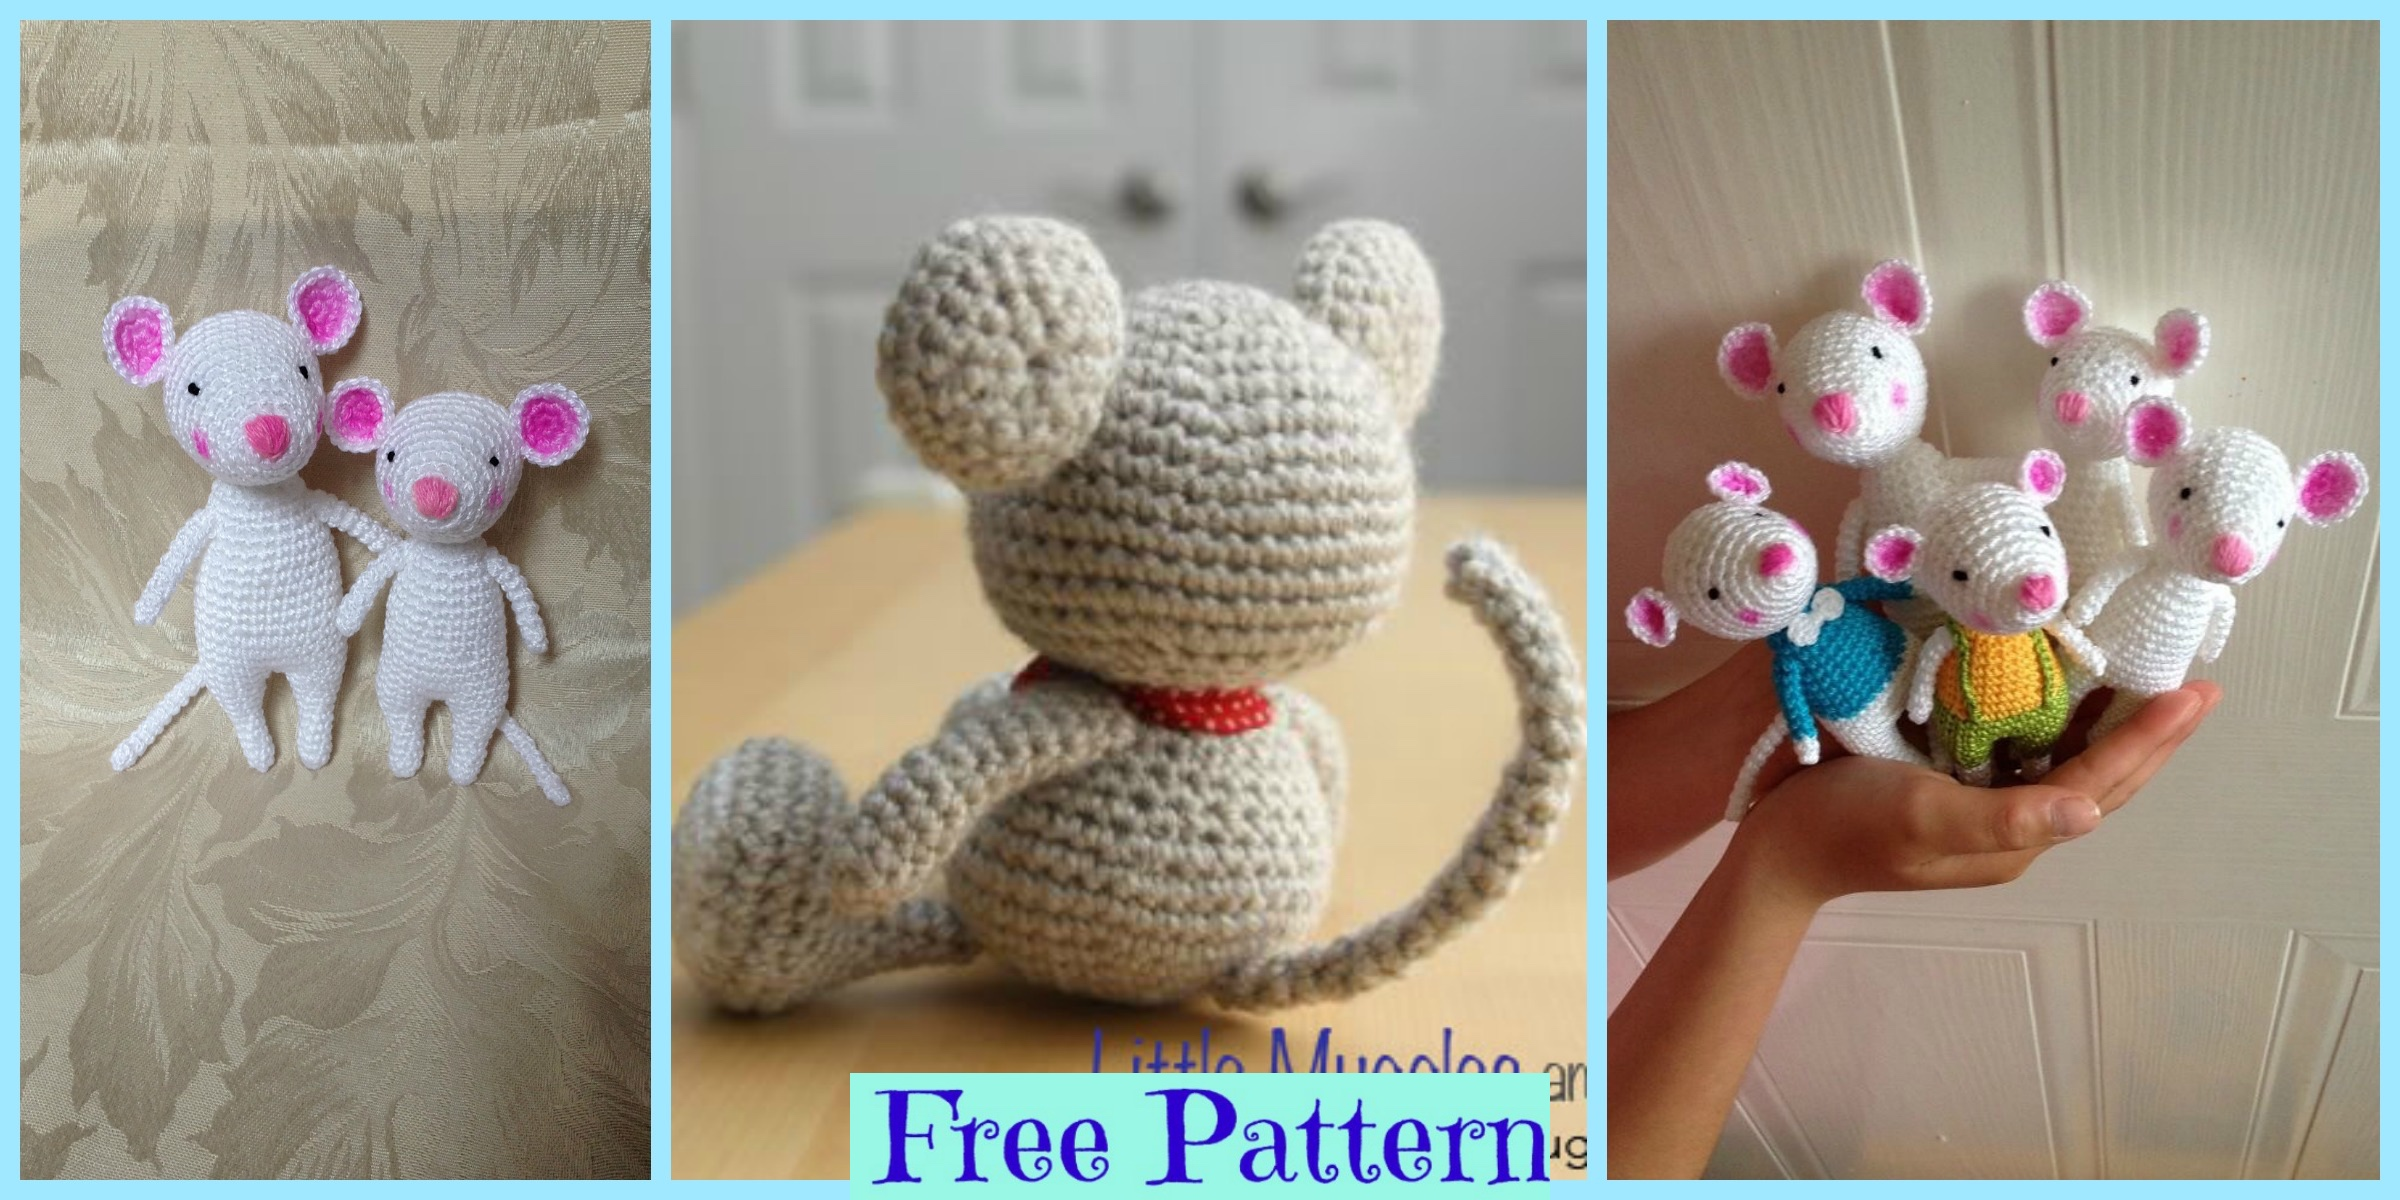 Sweet mouse free crochet pattern | Crochet mouse, Crochet patterns ... | 1200x2400